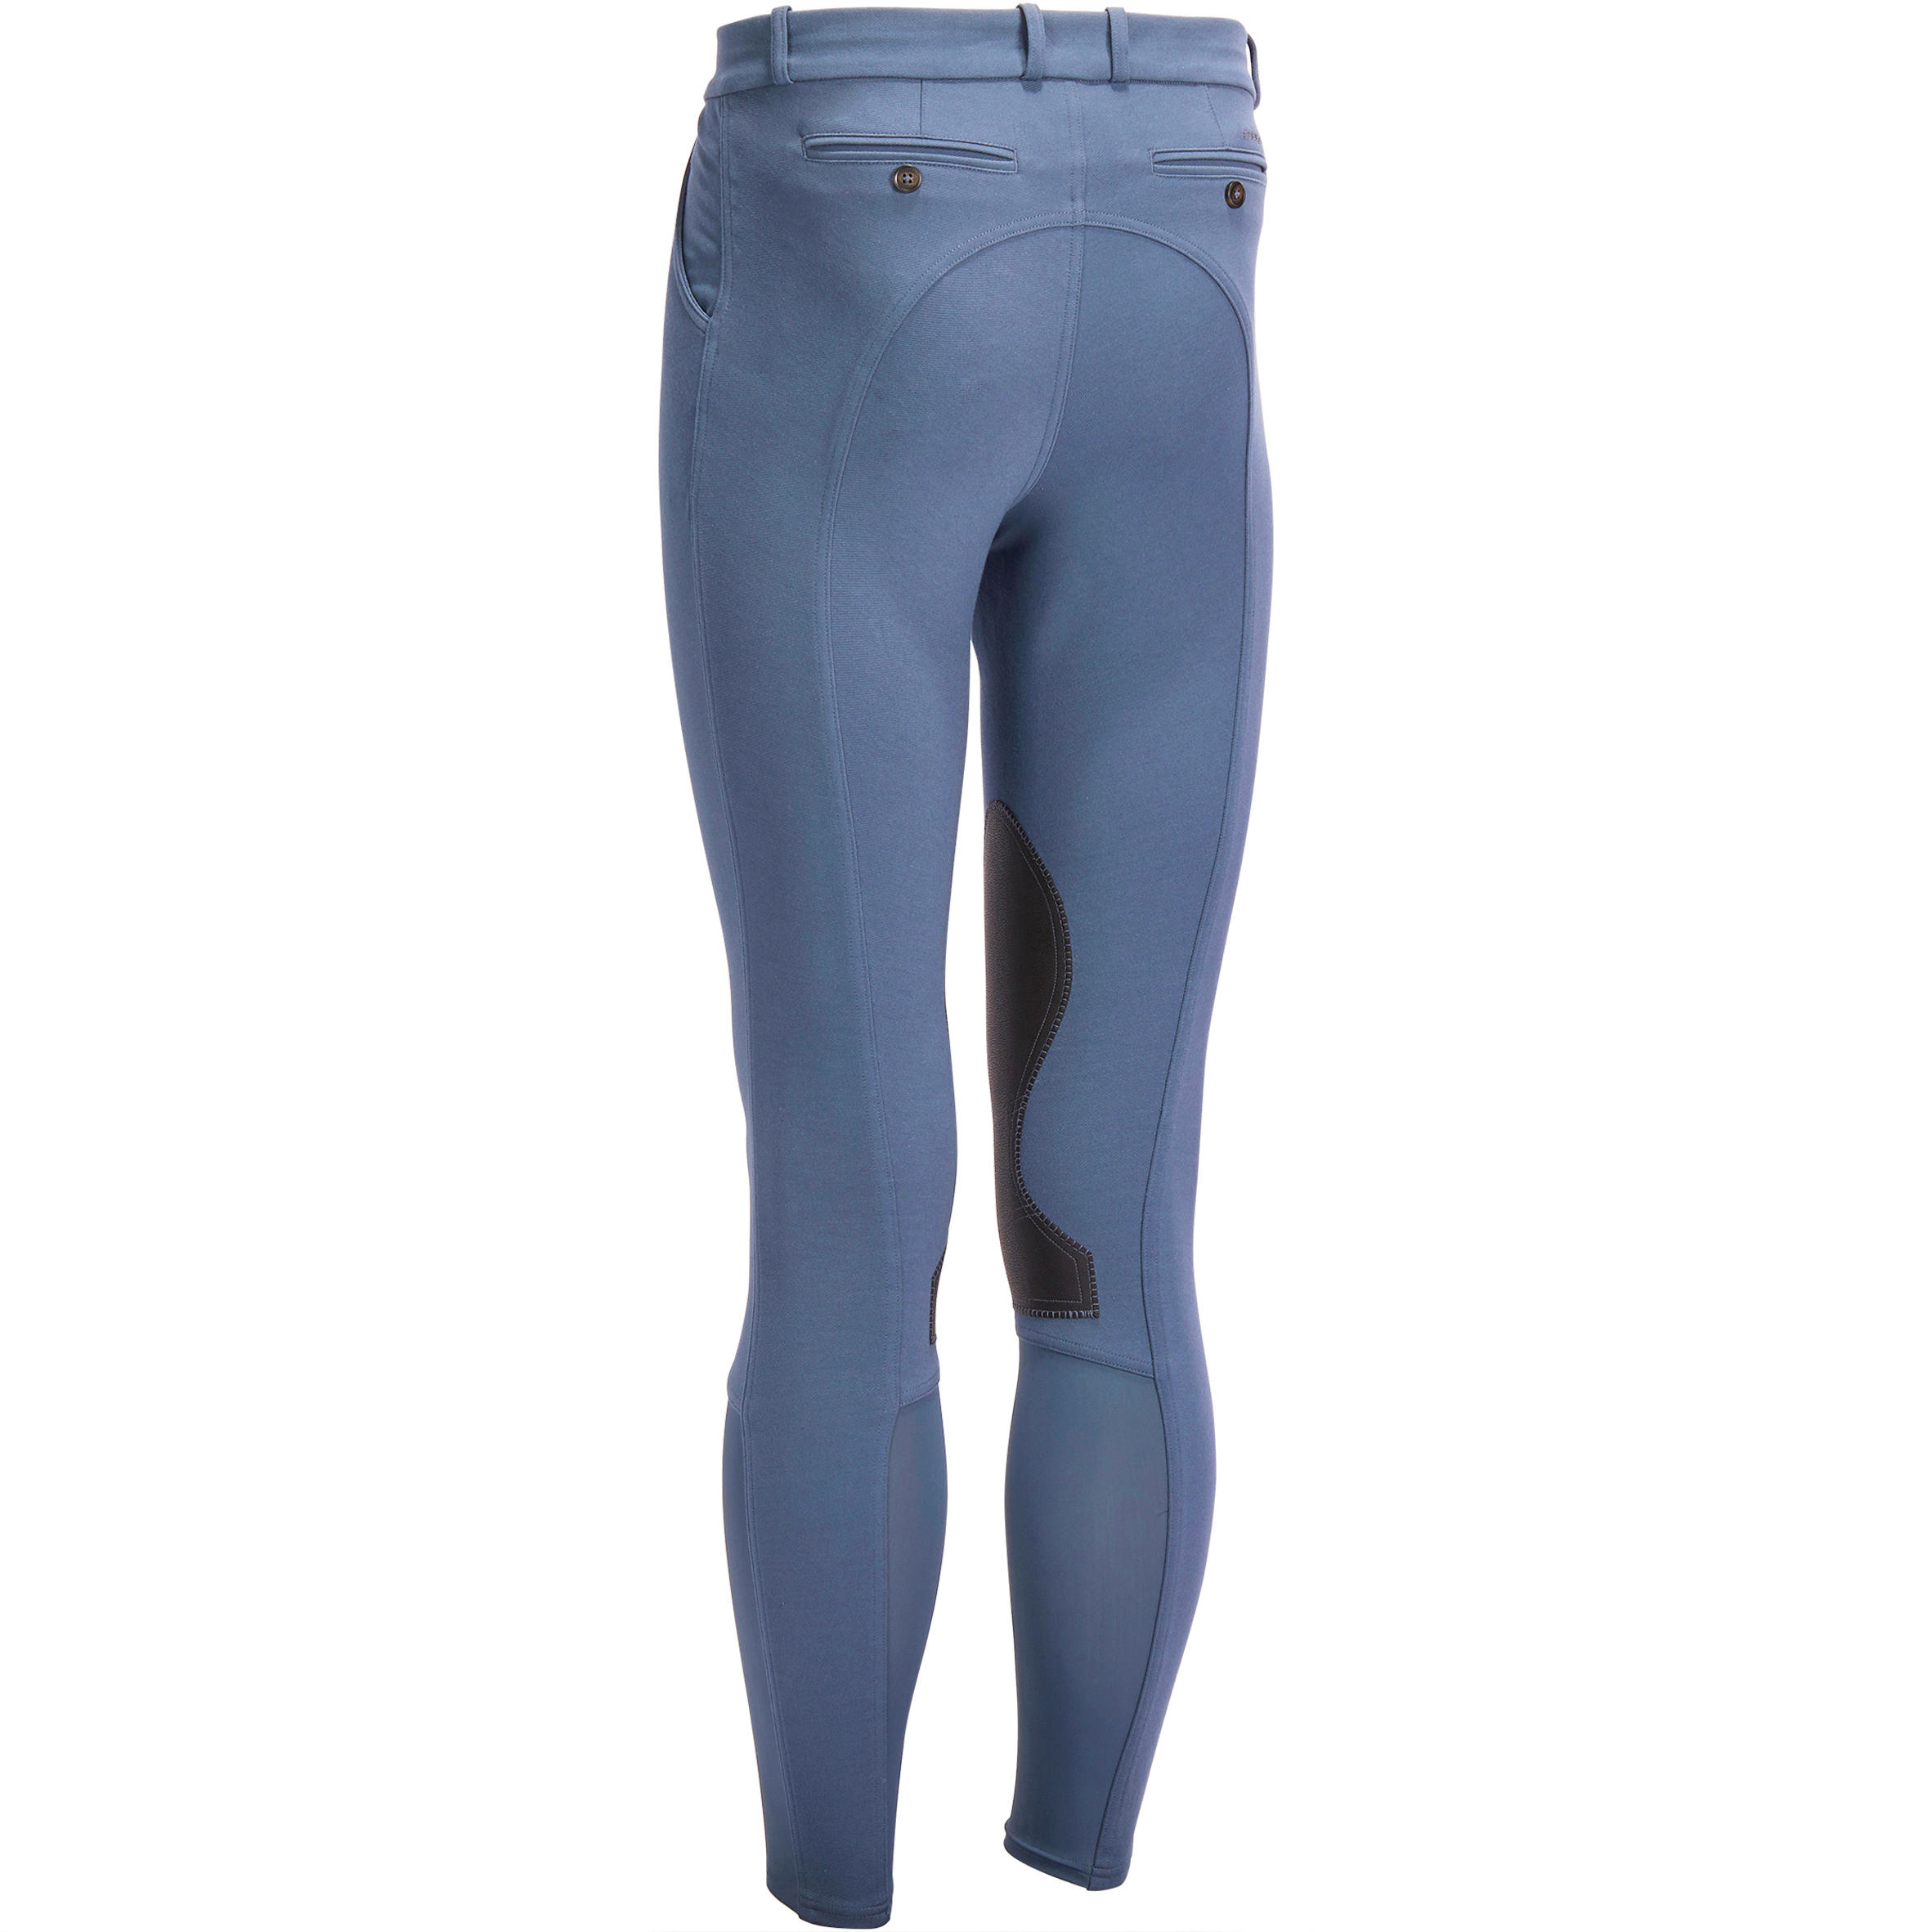 Adult Horse Riding BR 140 M Breeches SMG Blue/grey